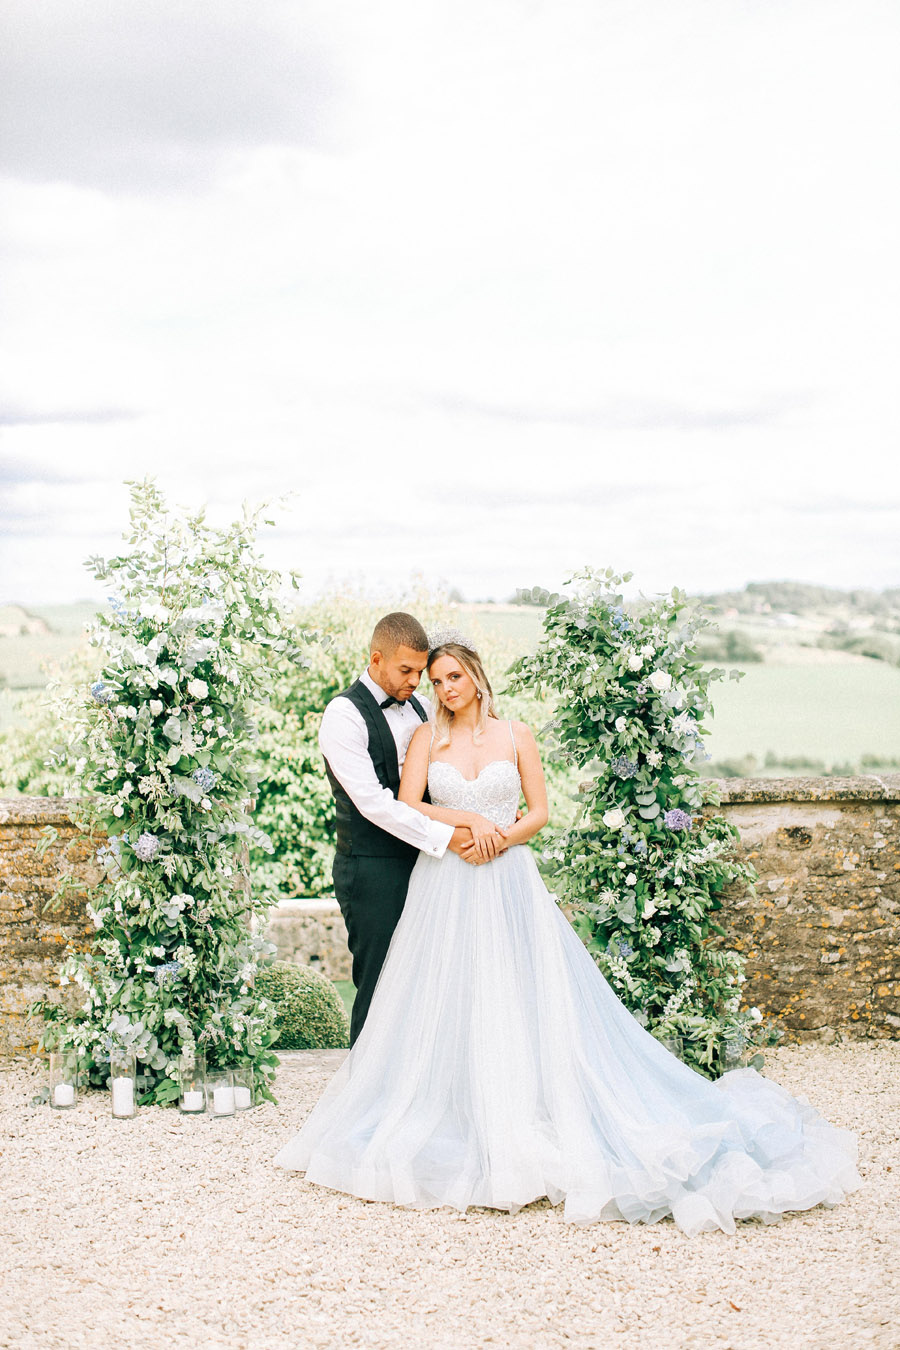 Enchanted Fairytale inspired shoot at Hamswell House, photography credit Charlotte Wise, wedding planner Lucy Ann Reid (21)